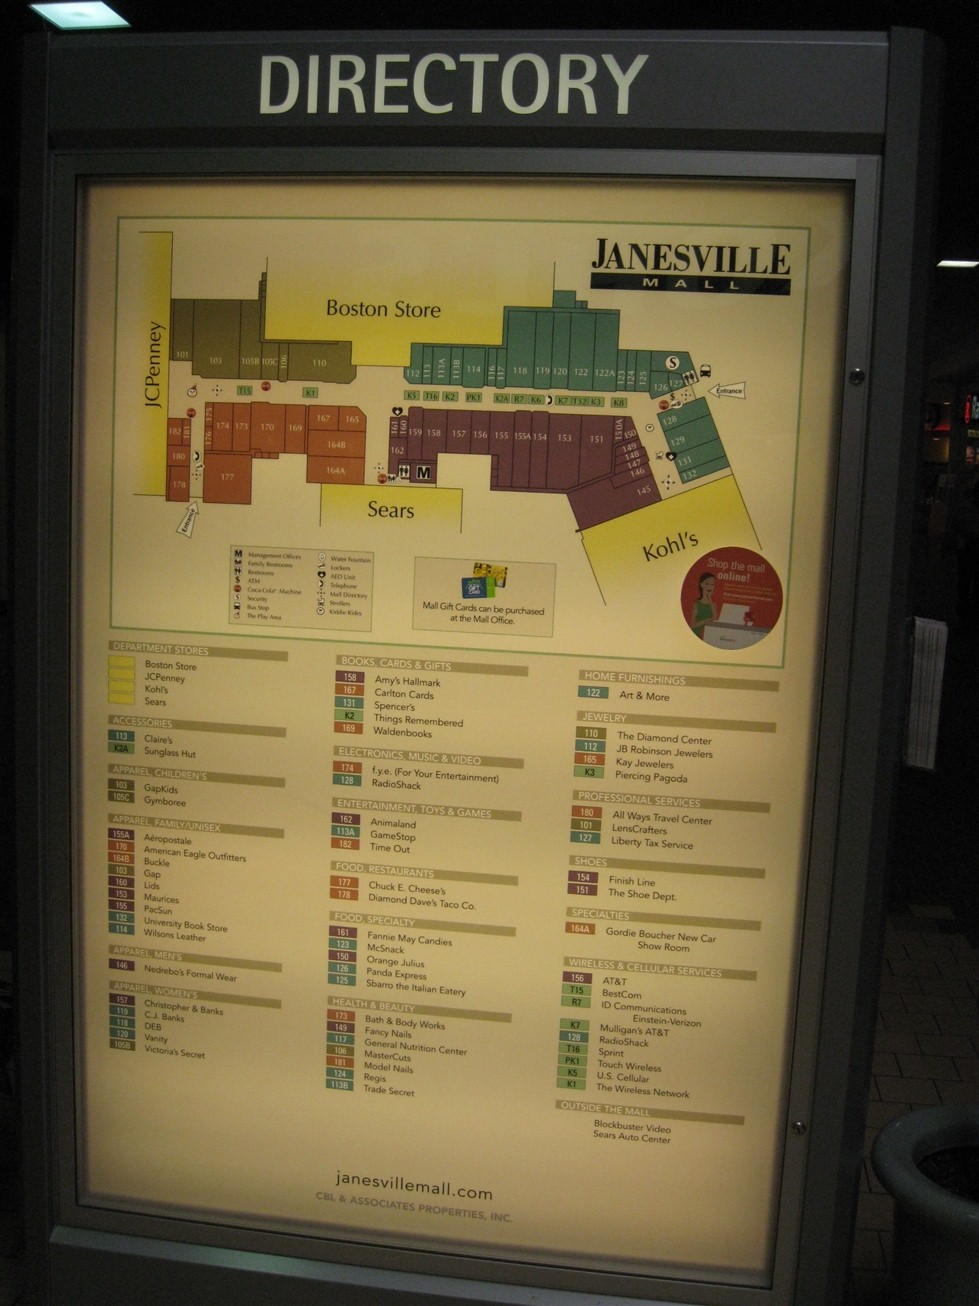 Janesville Mall directory in Janesville, WI